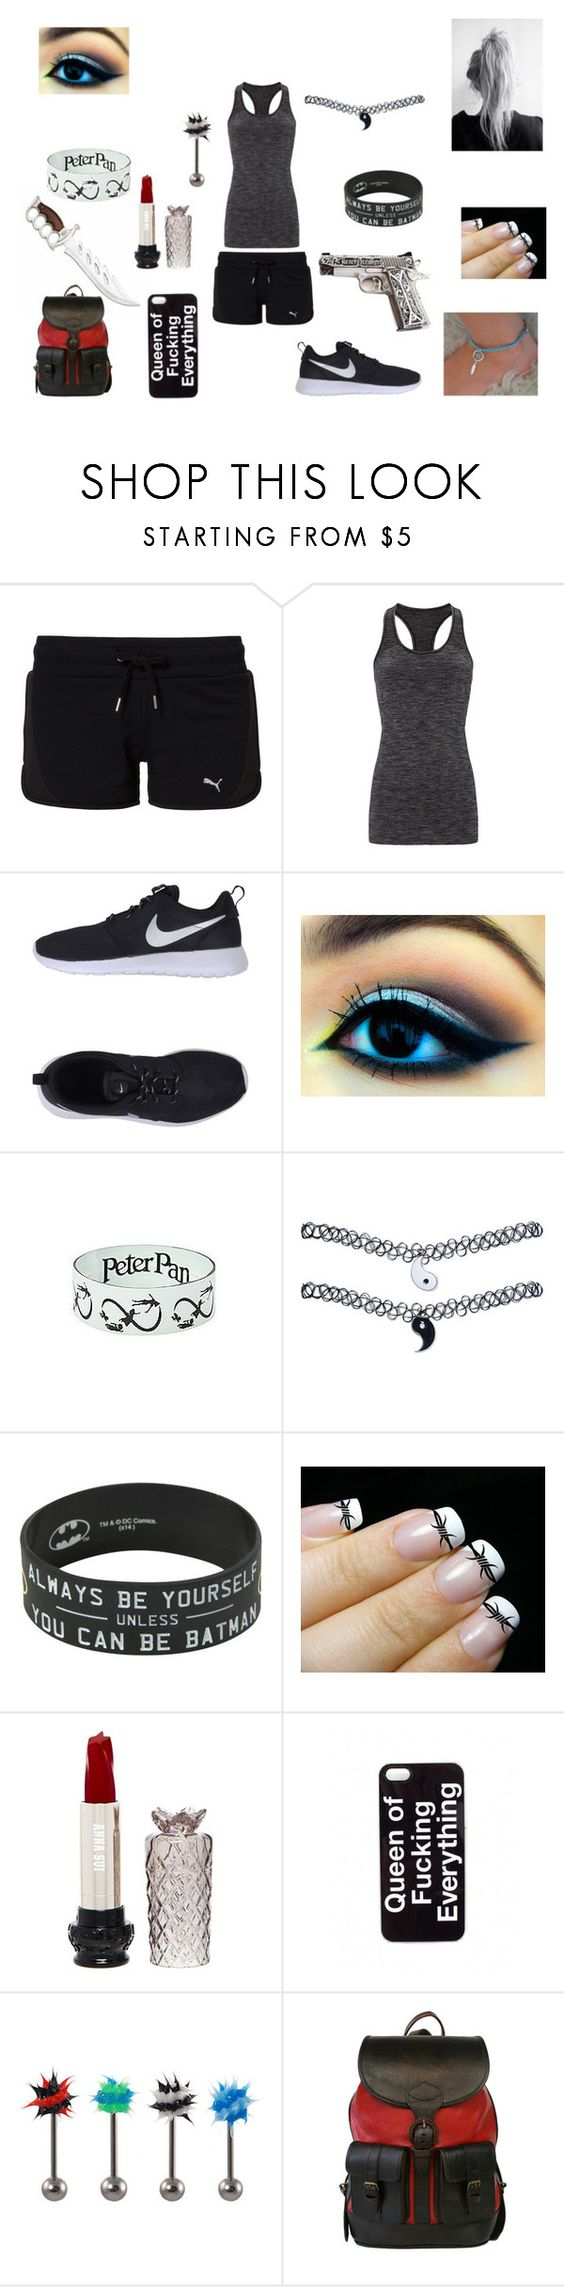 """Training"" by carriejohnson102701 ❤ liked on Polyvore featuring Puma, Sweaty Betty, NIKE, Disney, Wet Seal, Barbed, Anna Sui, Zero Gravity, Beara Beara and women's clothing"